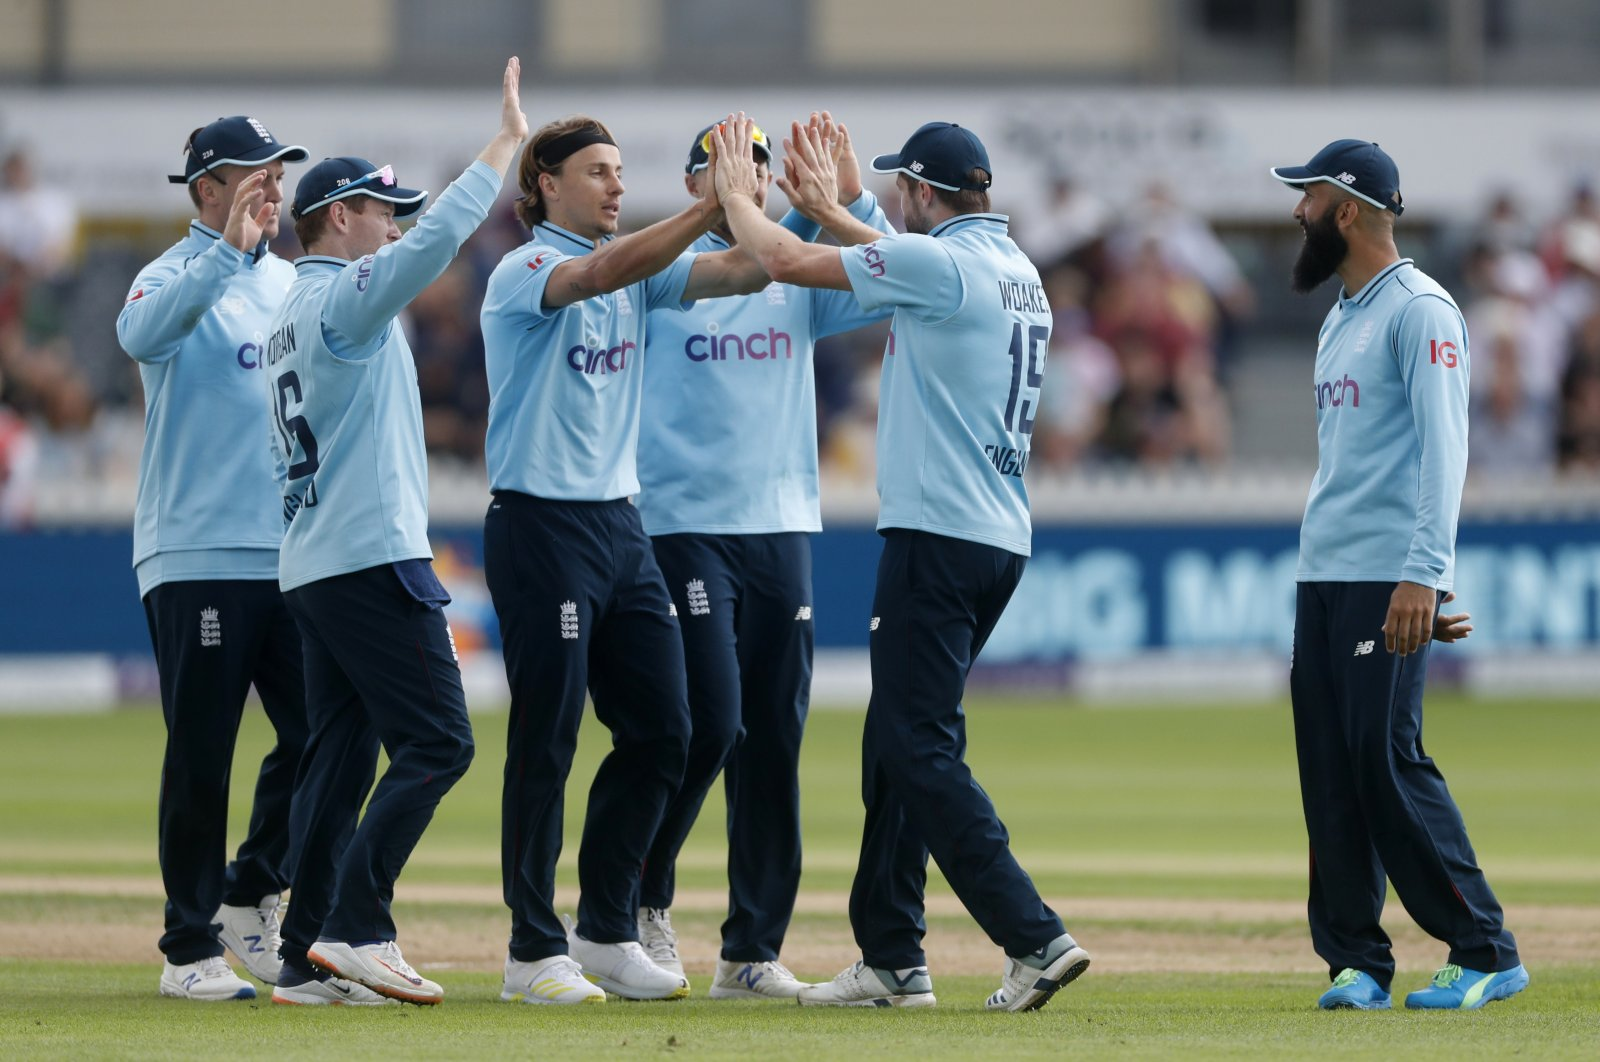 England's Chris Woakes (2nd R) celebrates with teammates after taking a catch to dismiss Sri Lanka's Oshada Fernando off the bowling of Tom Curran during an ODI at Bristol County Ground, Bristol, U.K., July 4, 2021. (Reuters Photo)